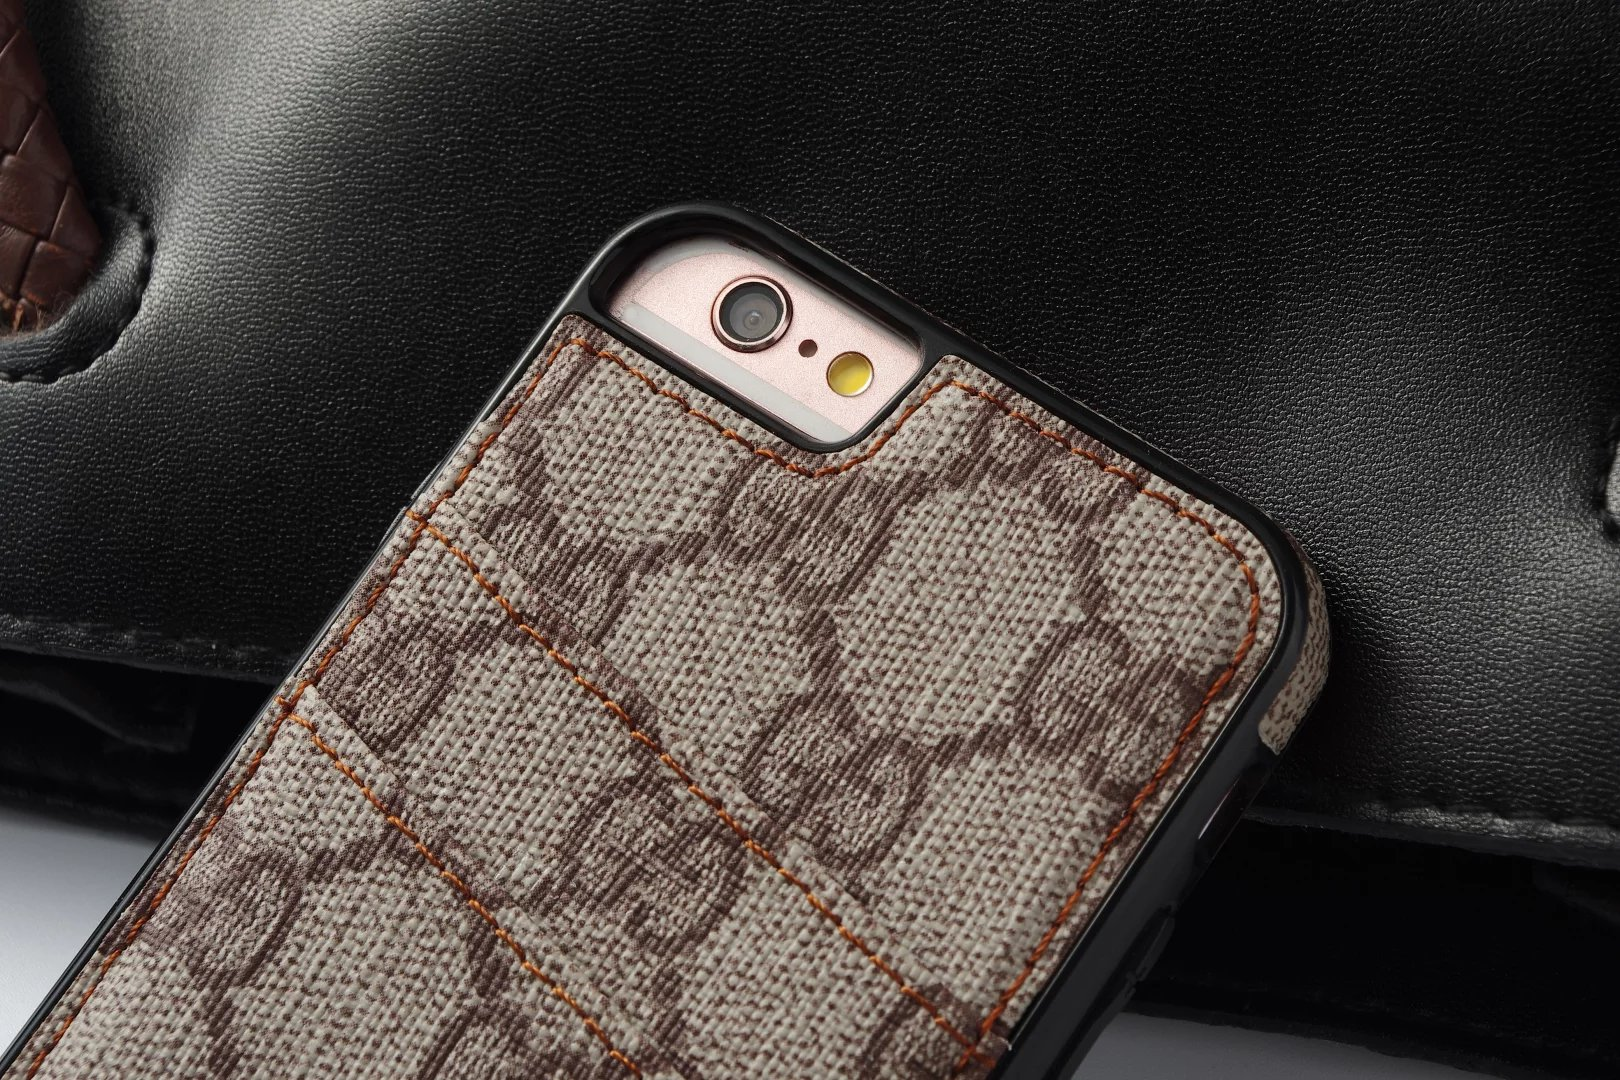 iphone klapphülle iphone hülle foto Burberry iphone6 hülle neues iphone von apple iphone hülle 6lber machen filzhülle iphone handy ca6 bedrucken las6n silikonhülle iphone 6 iphone 6 hutzhülle test